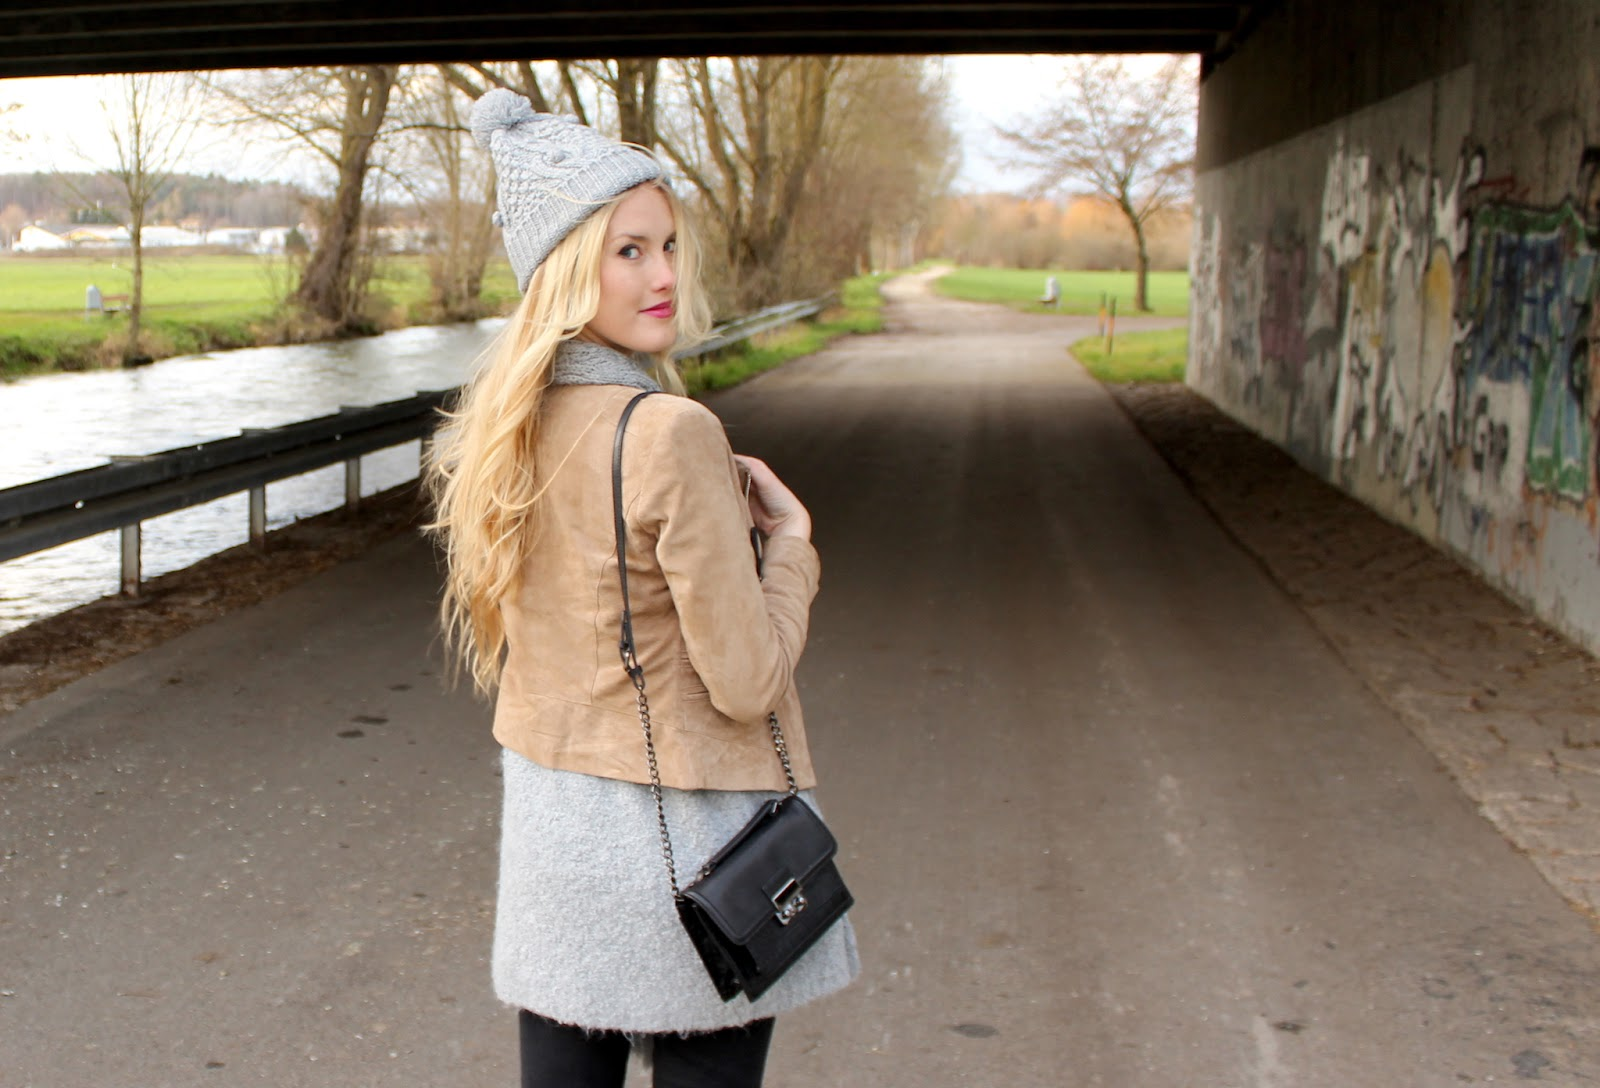 TheBlondeLion Lederjacke Strick Mütze http://theblondelion.blogspot.com/2014/12/look-grey-knit-and-beige-leather.html